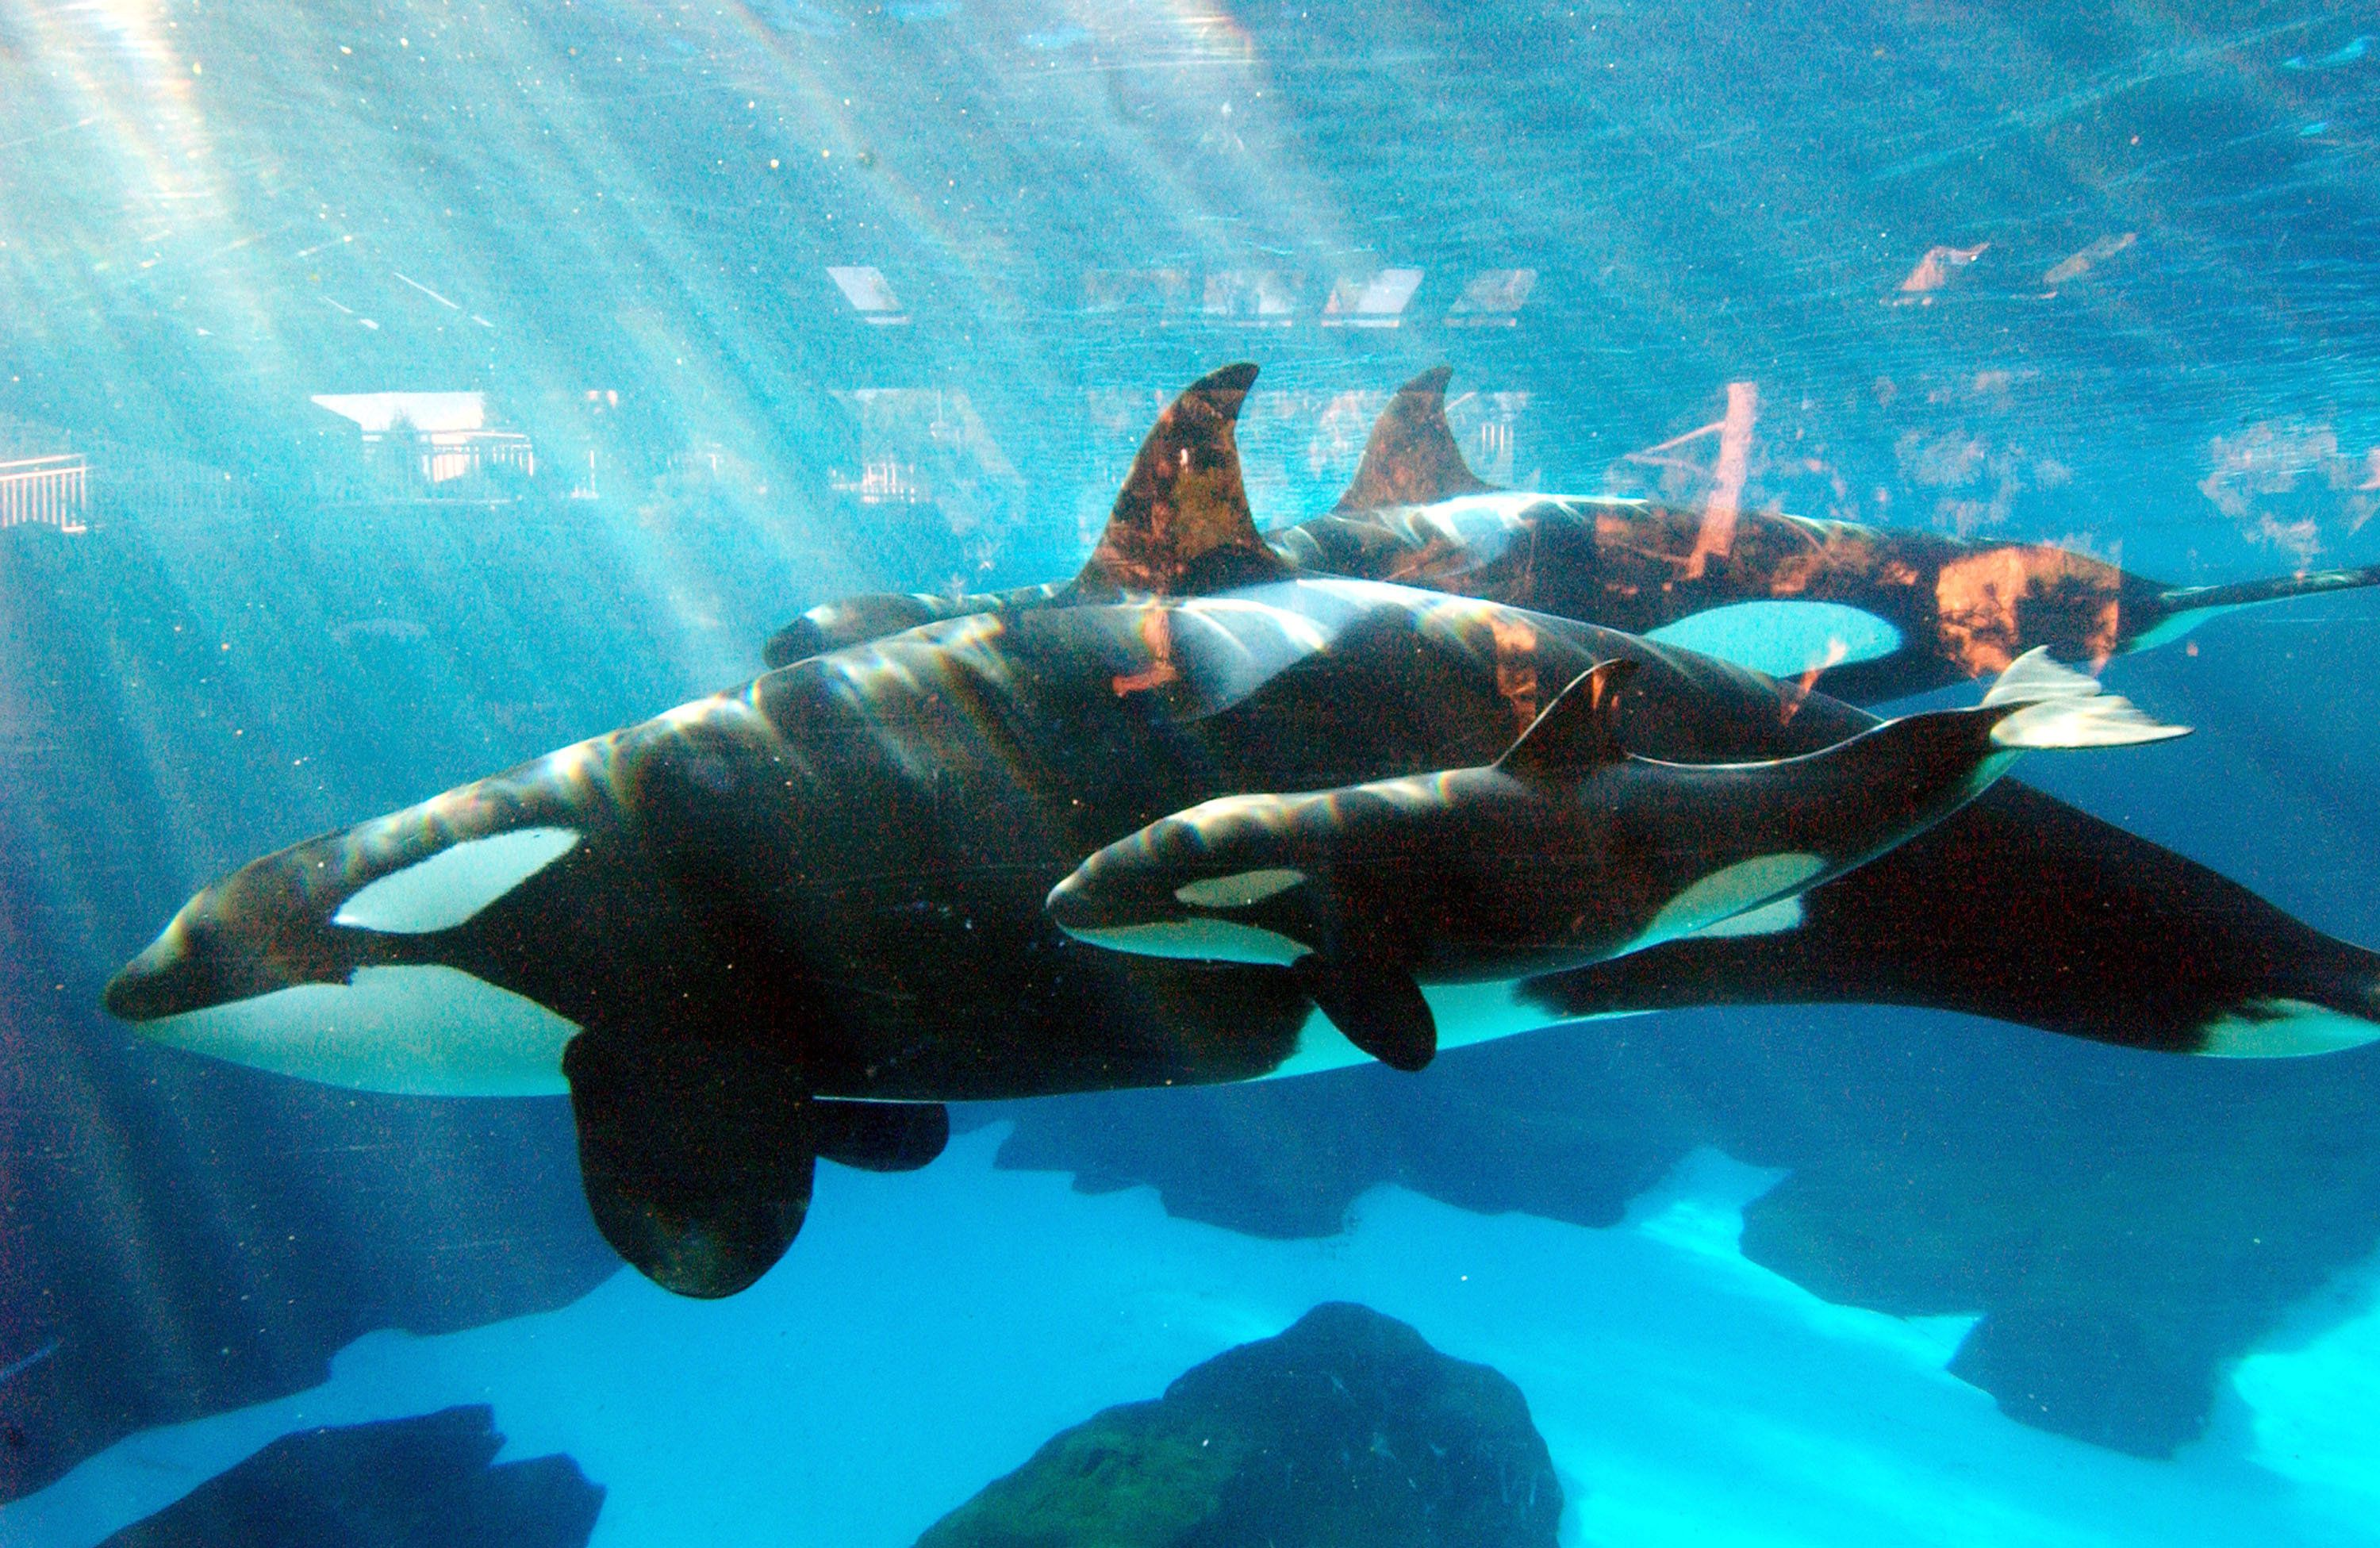 Yet Another Orca Dead at SeaWorld